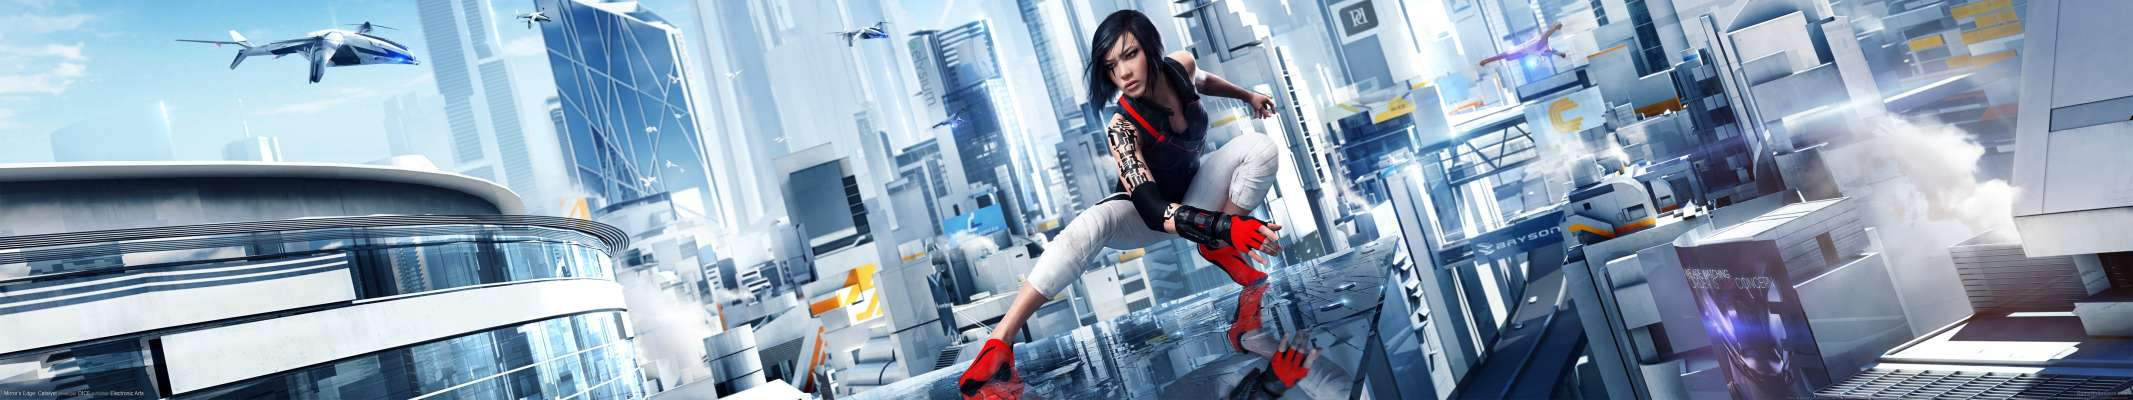 Mirror's Edge: Catalyst triple screen wallpaper or background